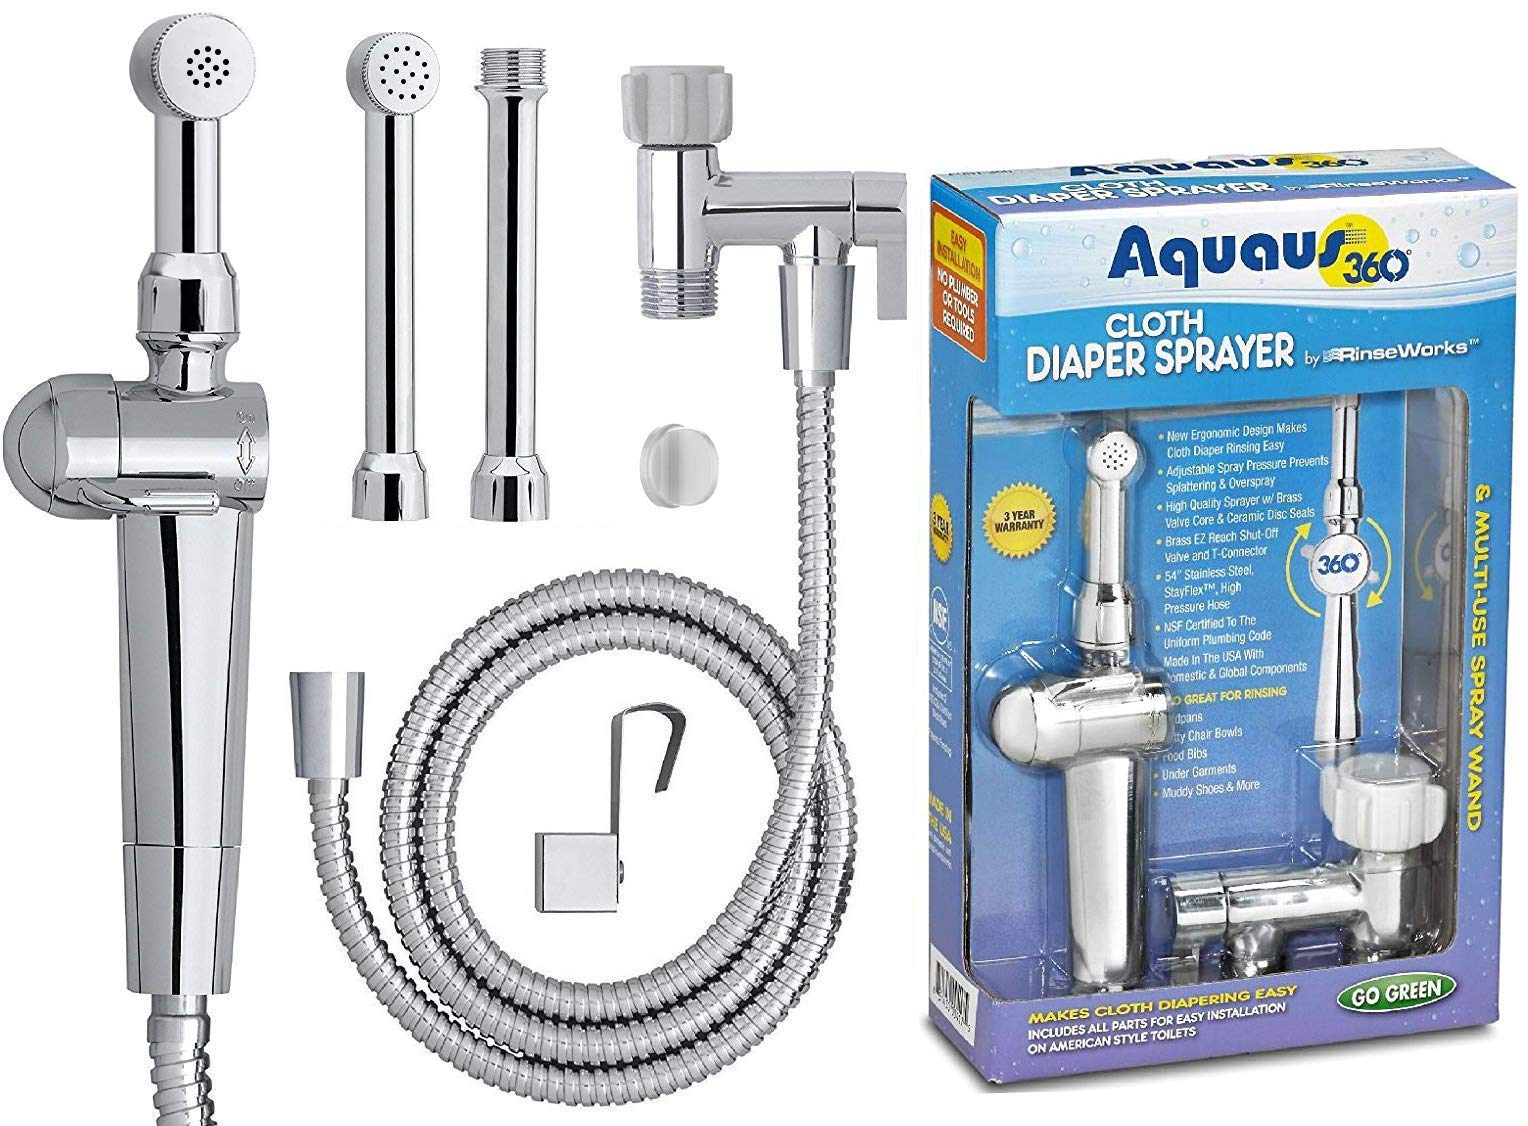 RinseWorks - Patented Aquaus 360 Diaper Sprayer - NSF Certified for Legal Installation - 3 Year Warranty - Dual Spray Pressure Controls - SafeSpray Valve Core, StayFlex Hose by RinseWorks